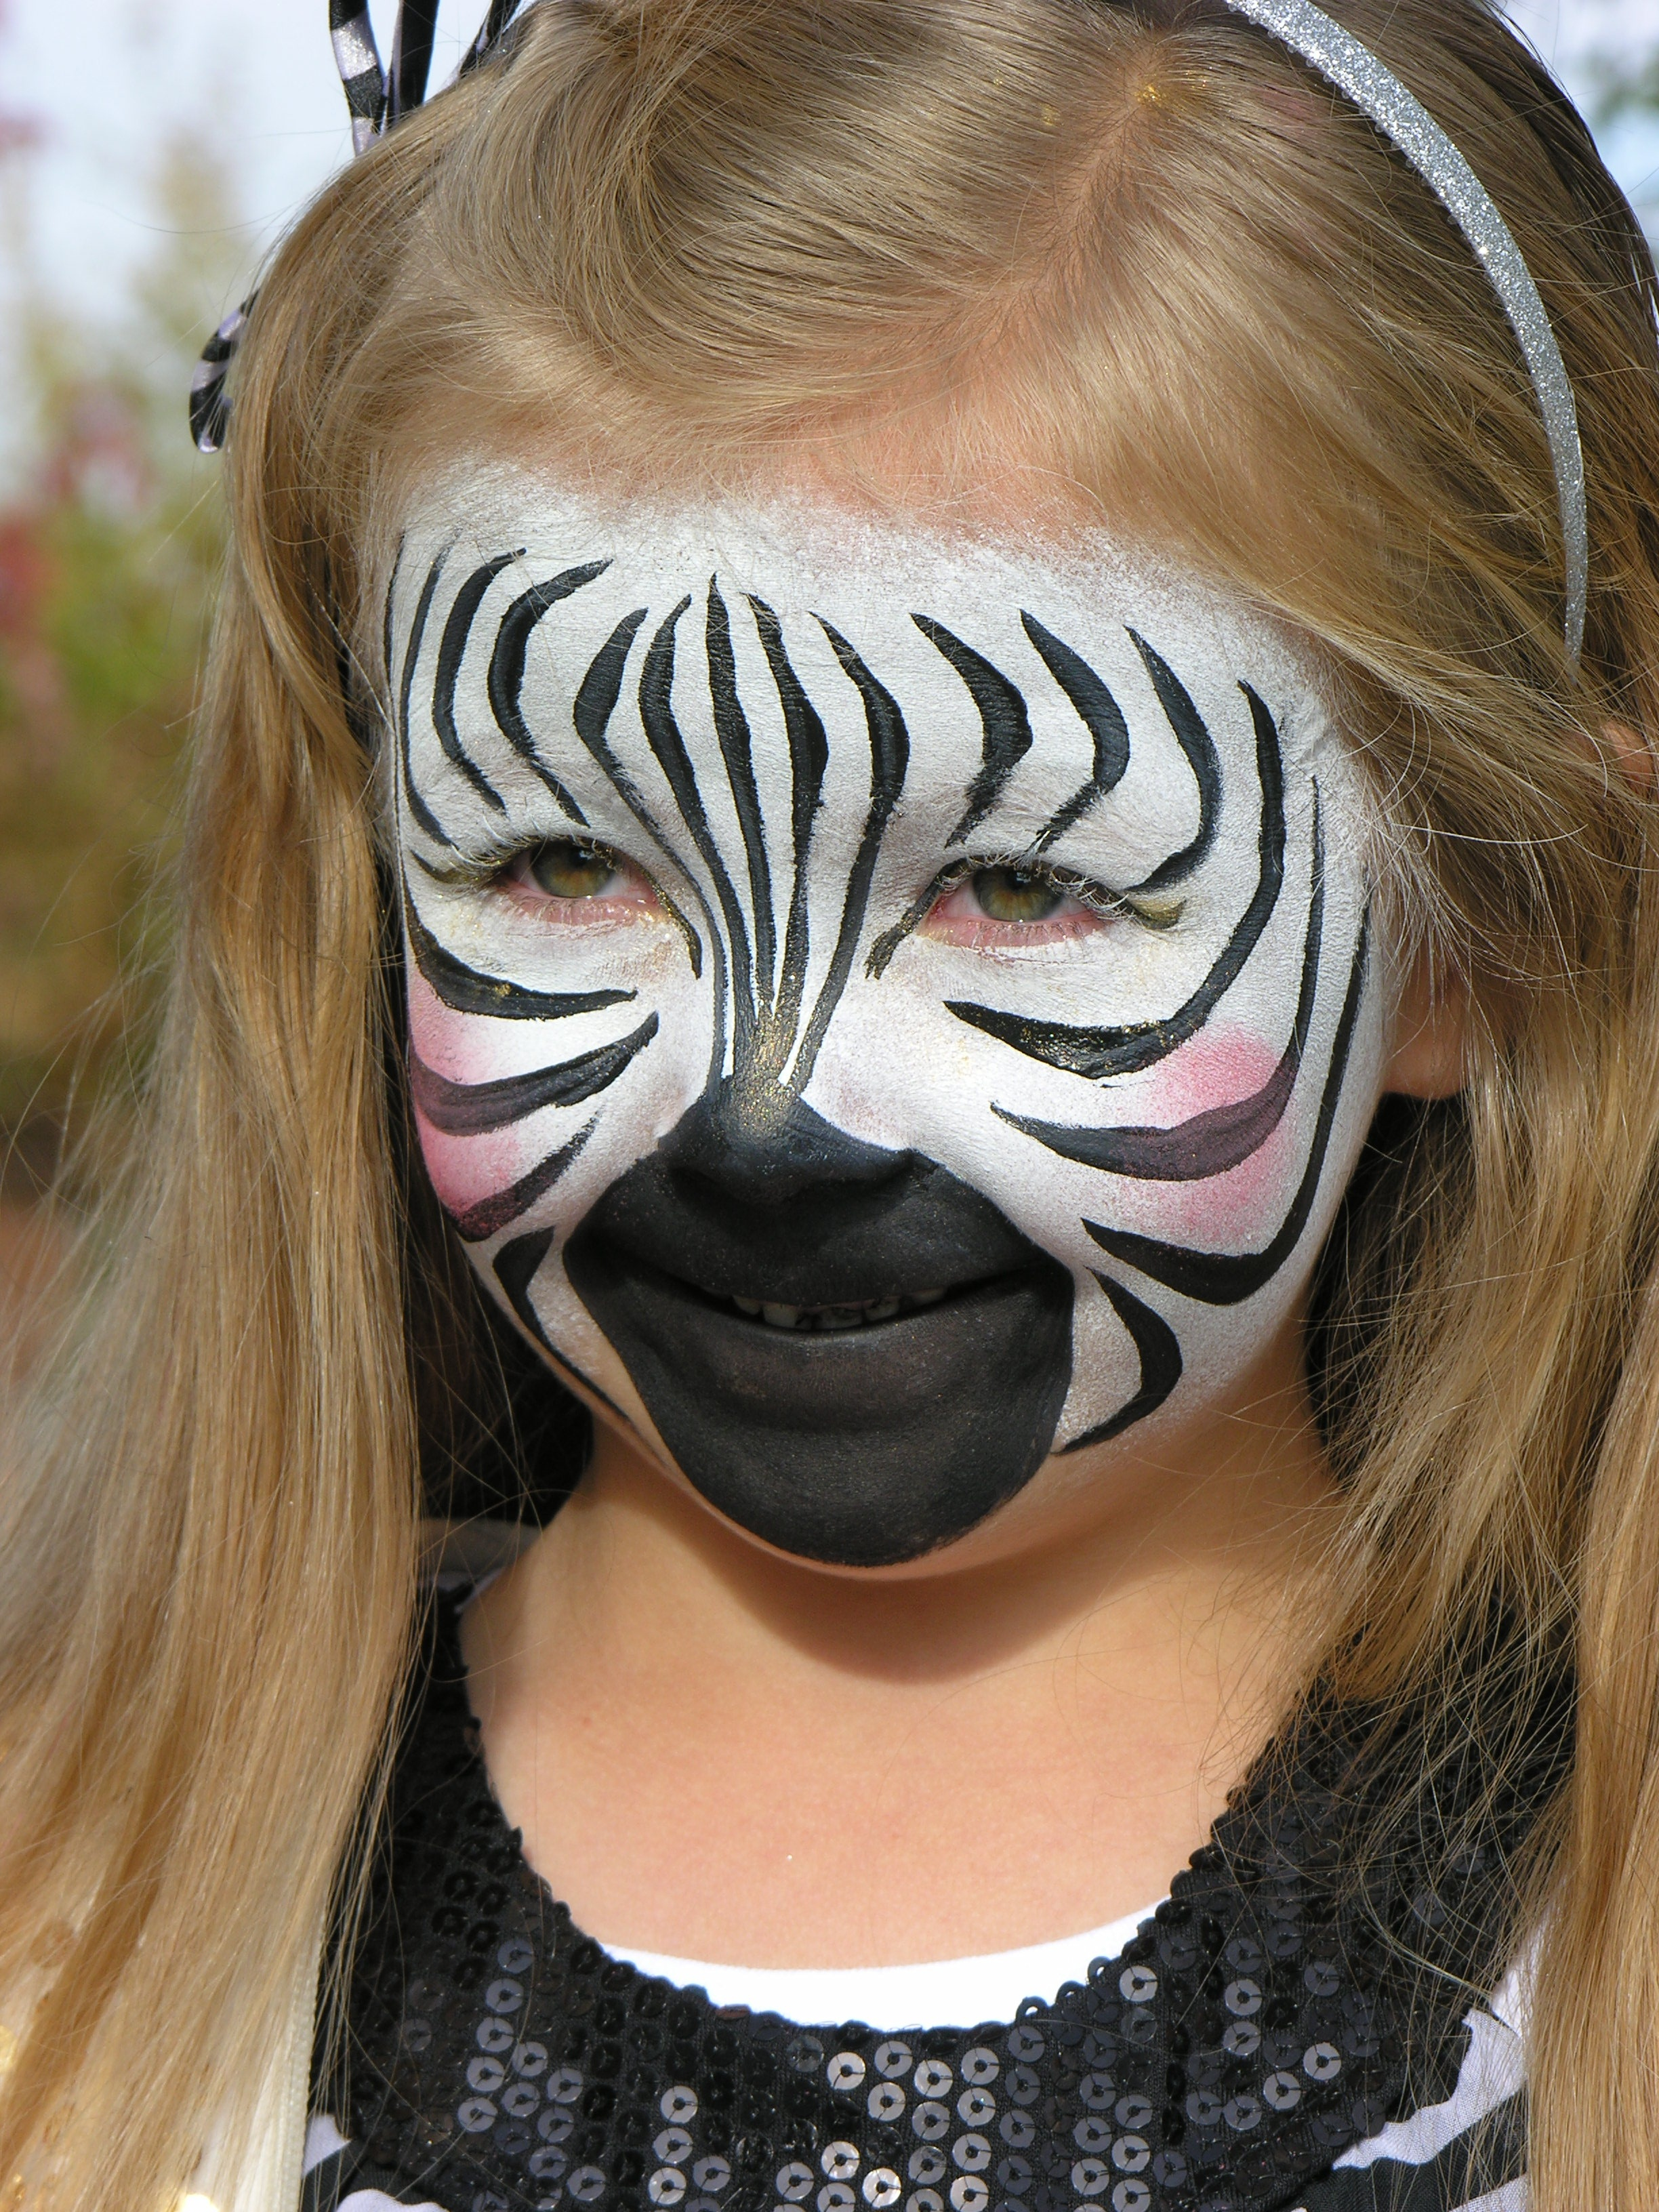 Zebra Makeup For Halloween